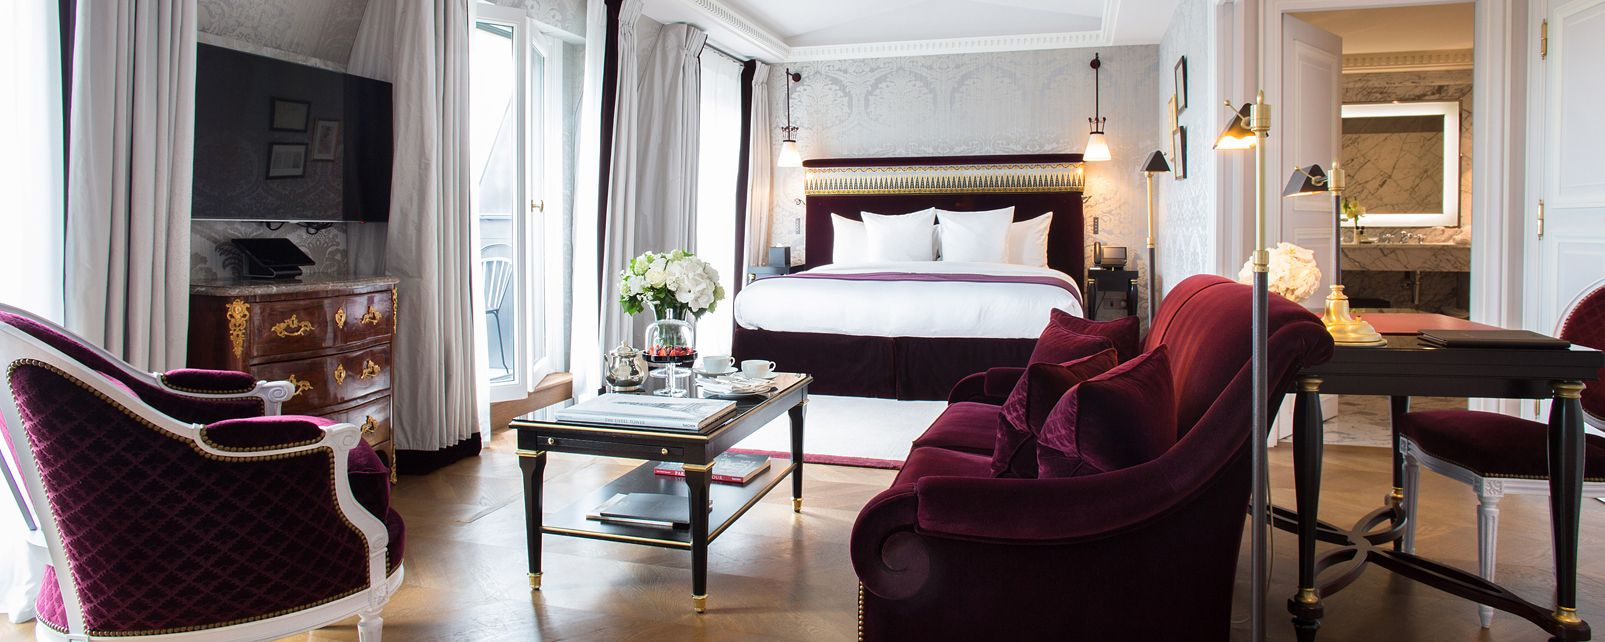 hotel la reserve paris paris frankreich. Black Bedroom Furniture Sets. Home Design Ideas